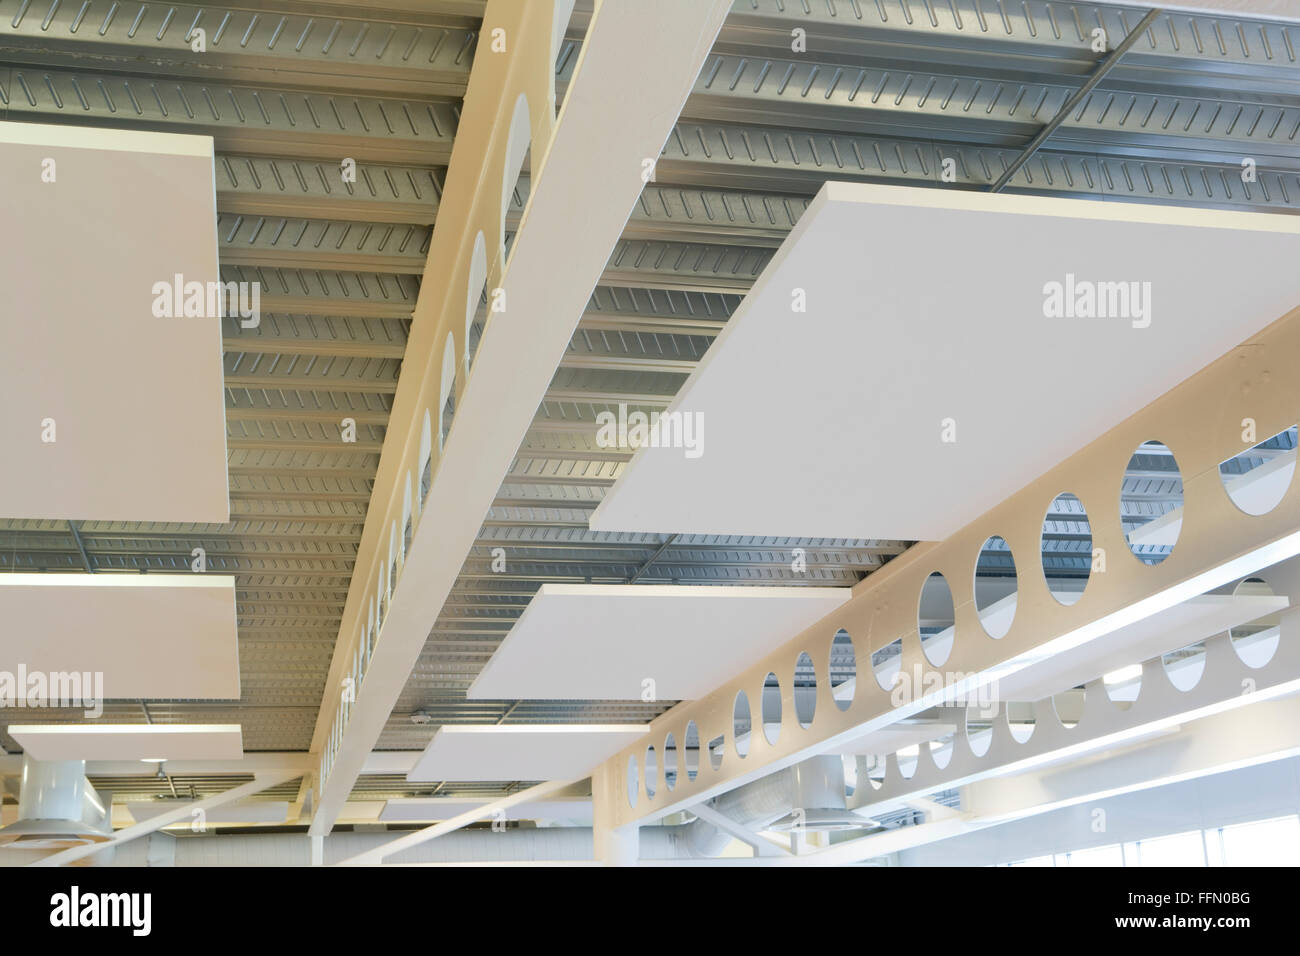 Brighton and Hove College, Brighton, England restaurant acoustic panels - Stock Image